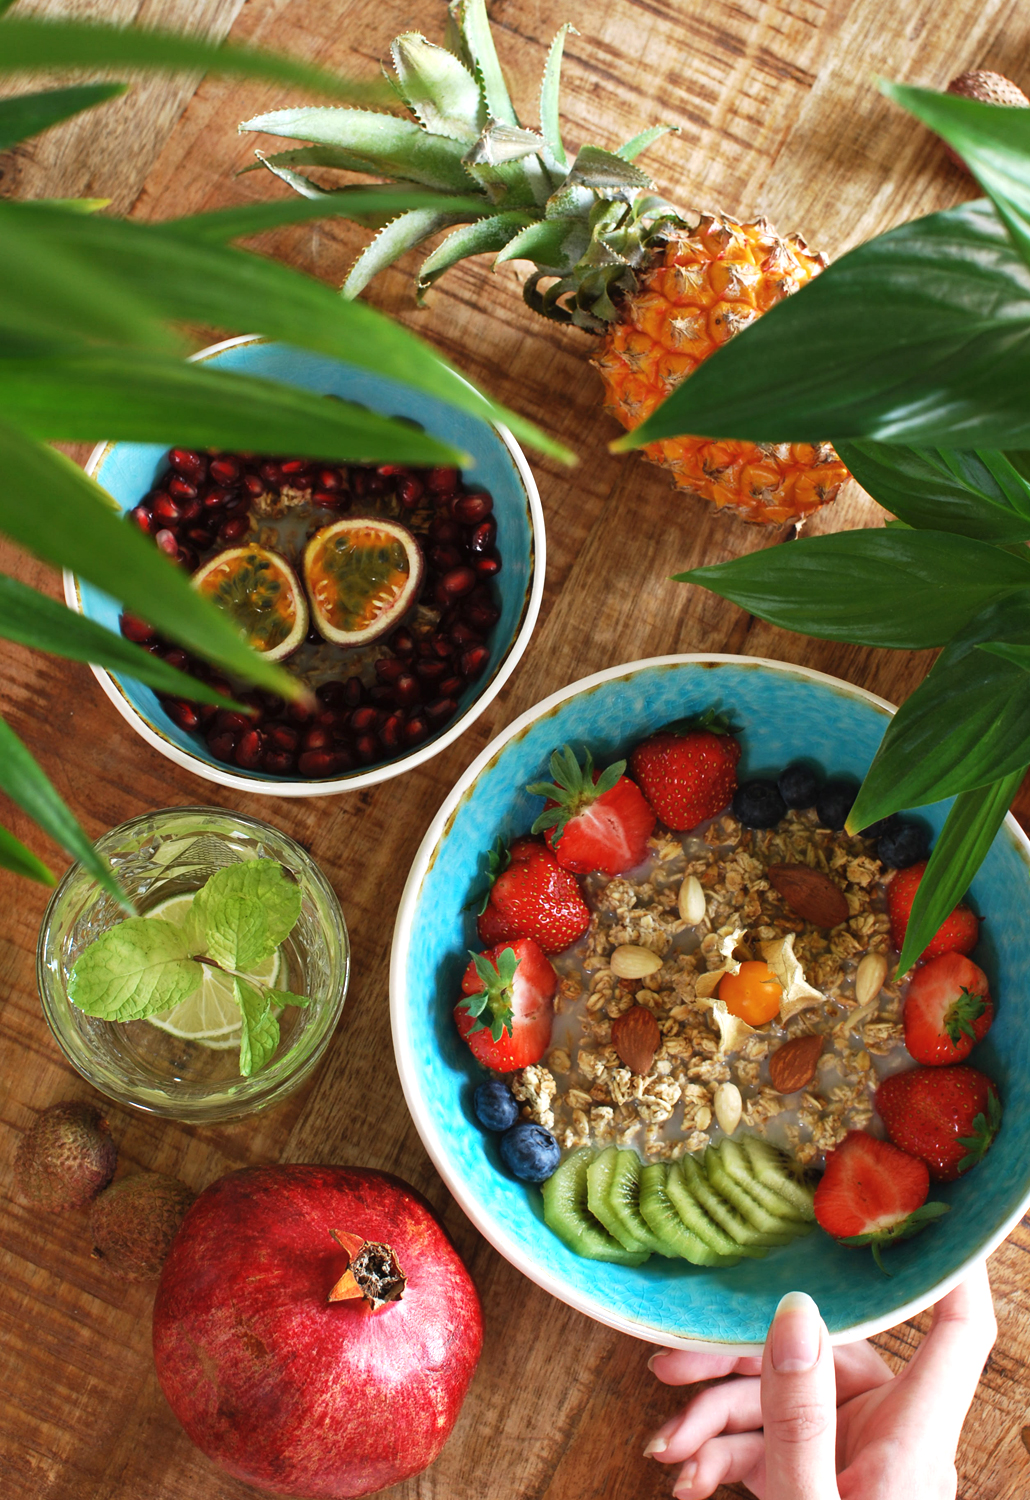 Alpro Roasted almond unsweeted unroasted breakfast bowl